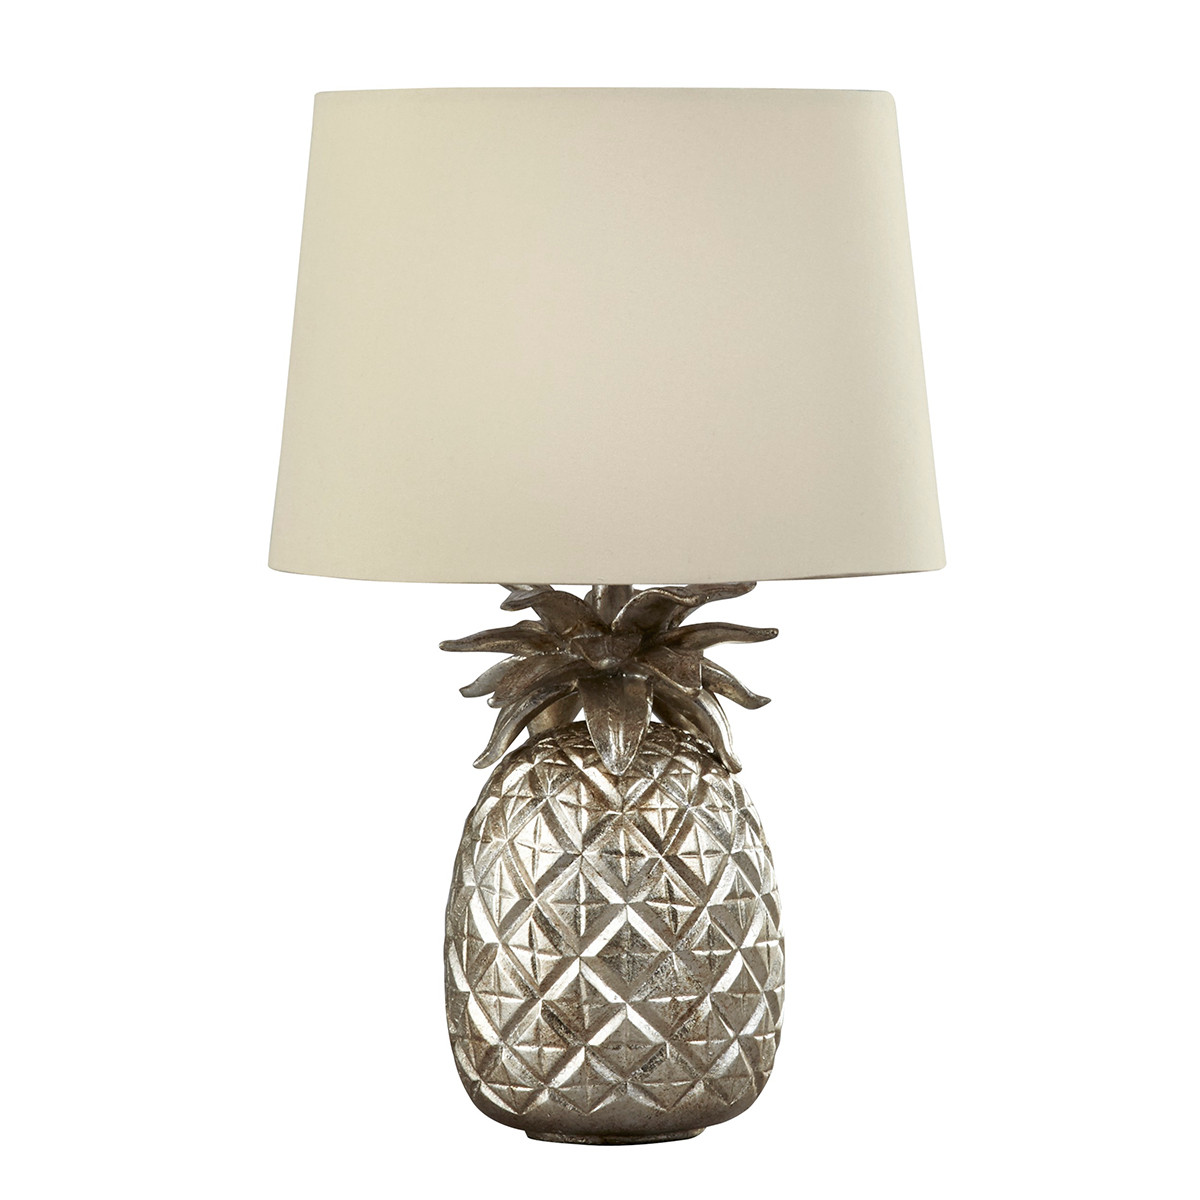 Pineapple Home Accessories Luxury 5 Of the Best Pineapple Home Accessories Decorating Of Contemporary 40 Models Pineapple Home Accessories